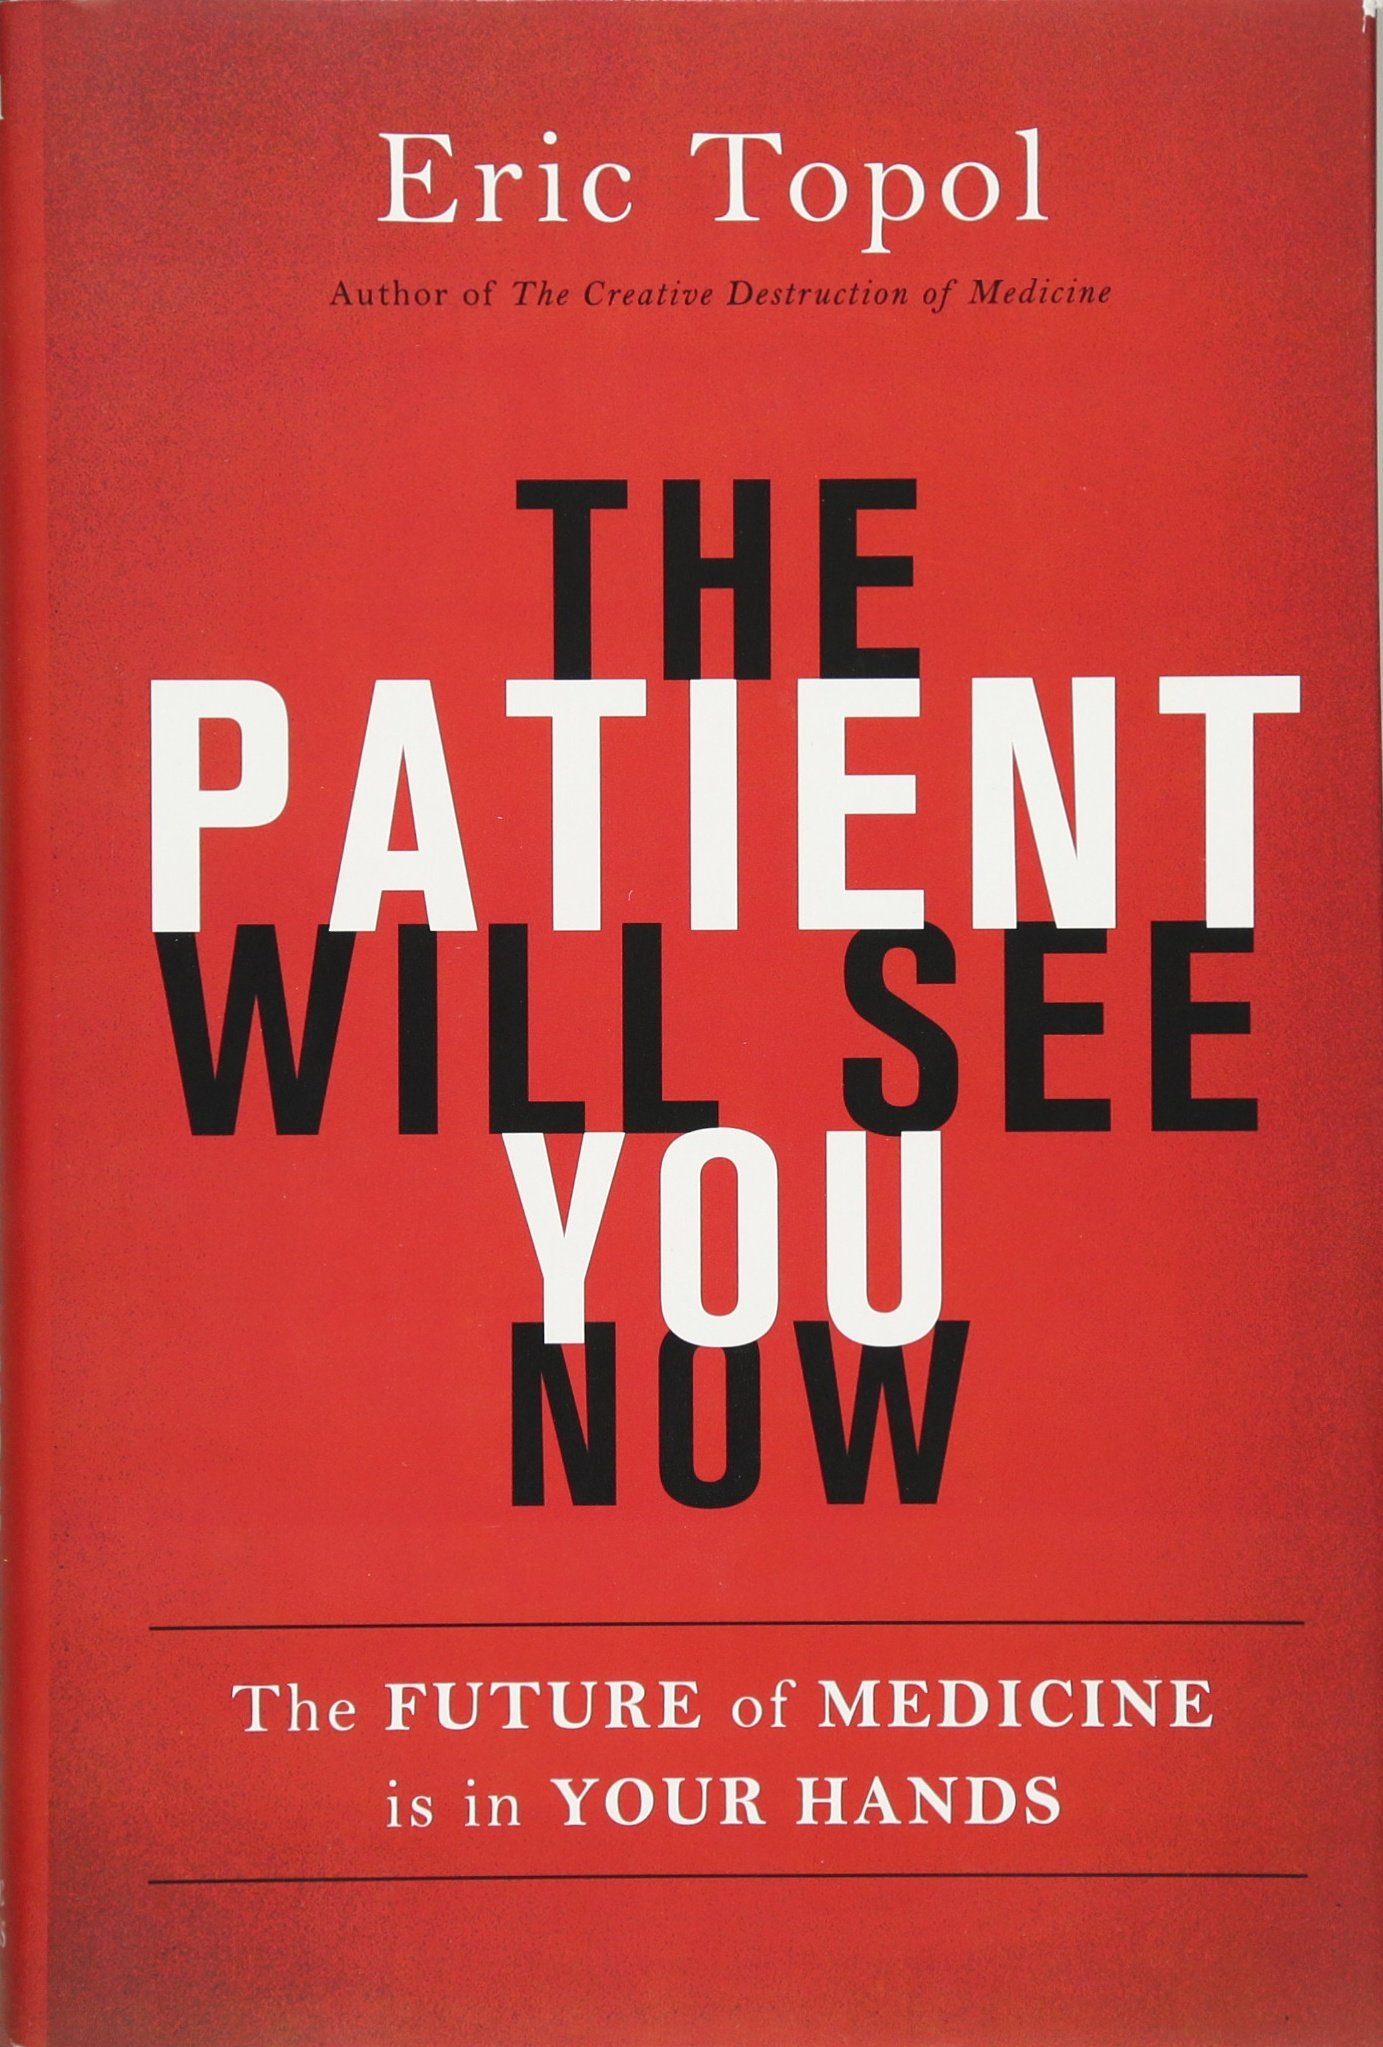 Buy The Patient Will See You Now Book Online At Low Prices In India  The  Patient Will See You Now Reviews & Ratings  Amazon